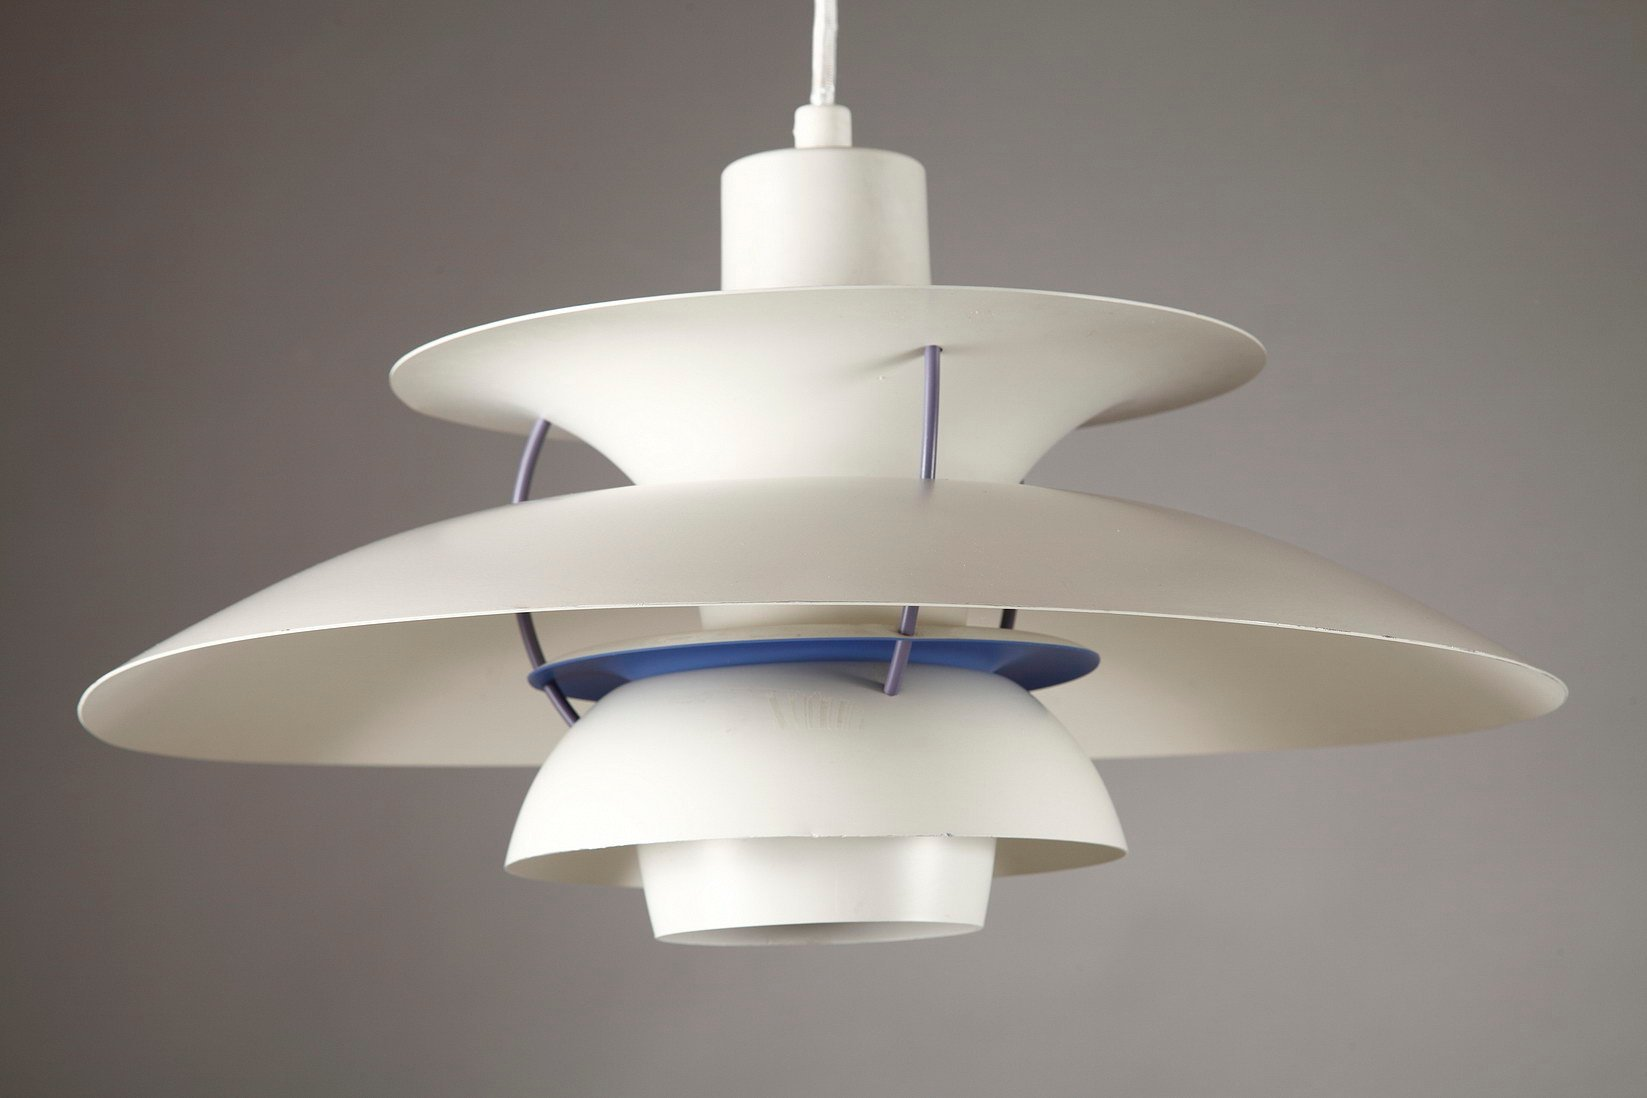 Ph 5 Pendant Lamp By Poul Henningsen For Louis Poulsen For